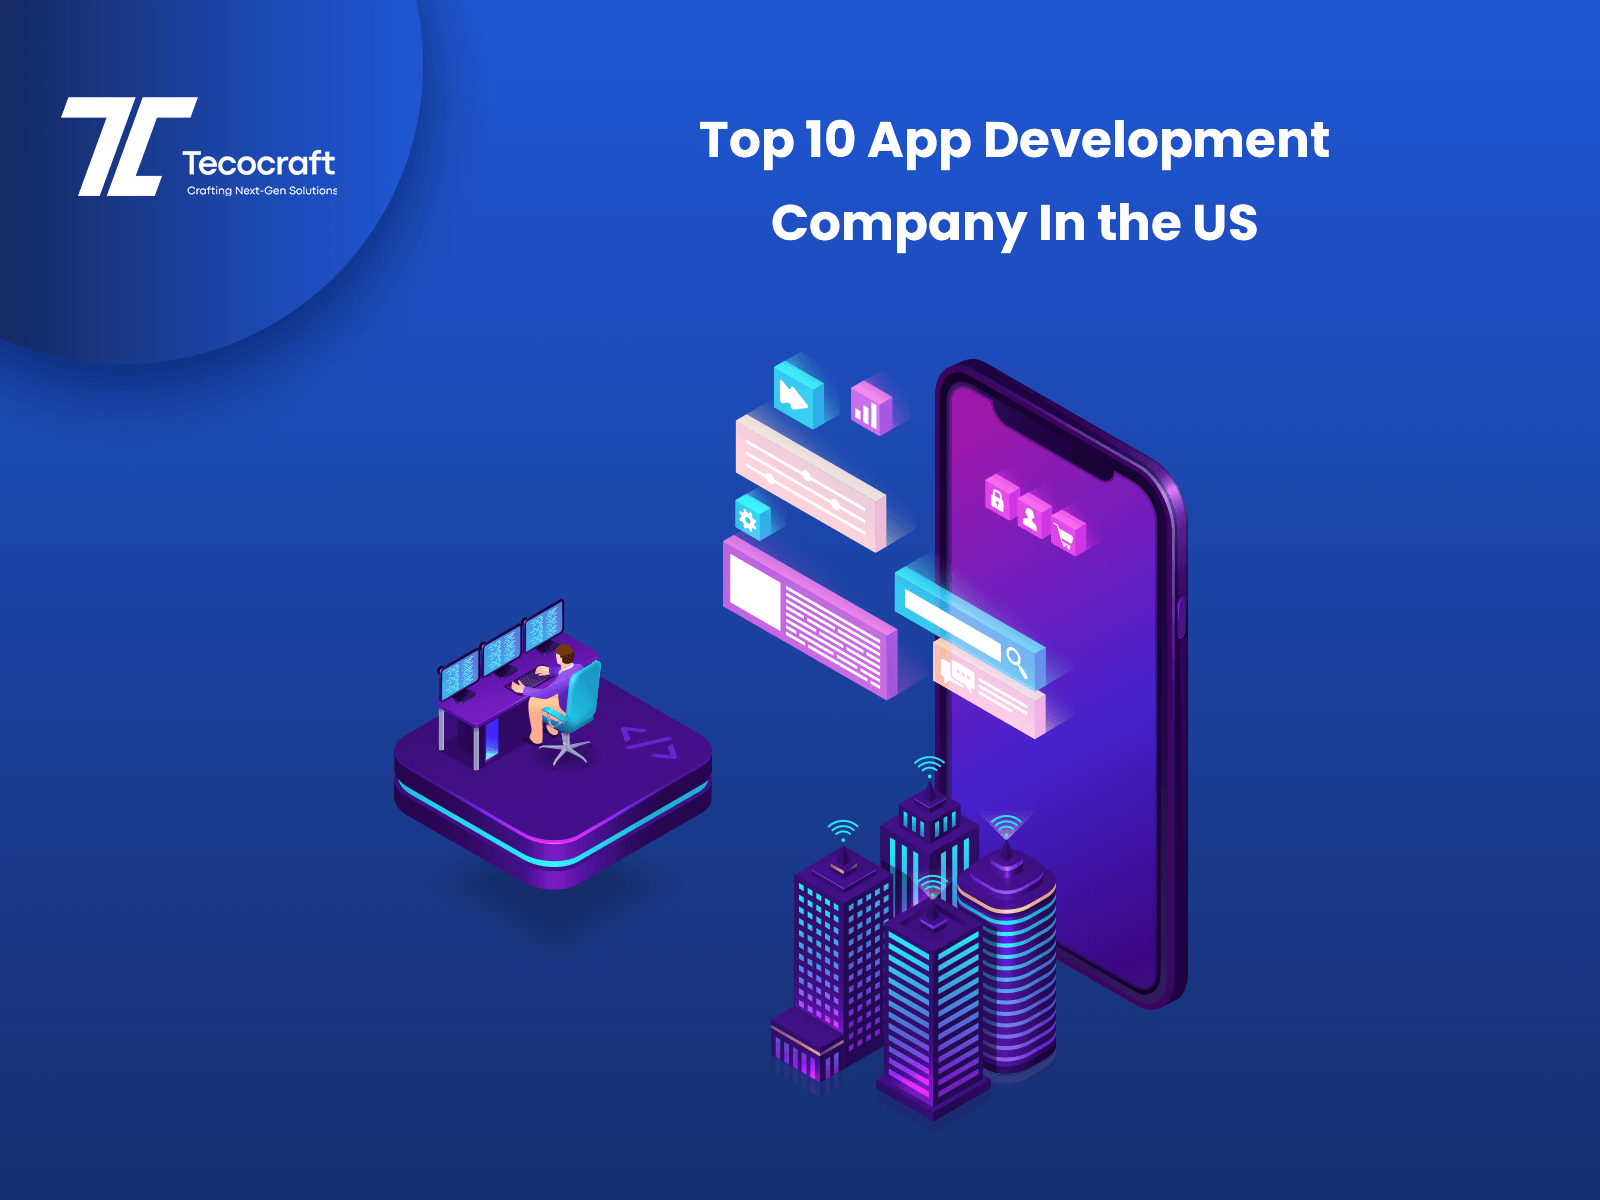 Top 10 App Development Company In the US